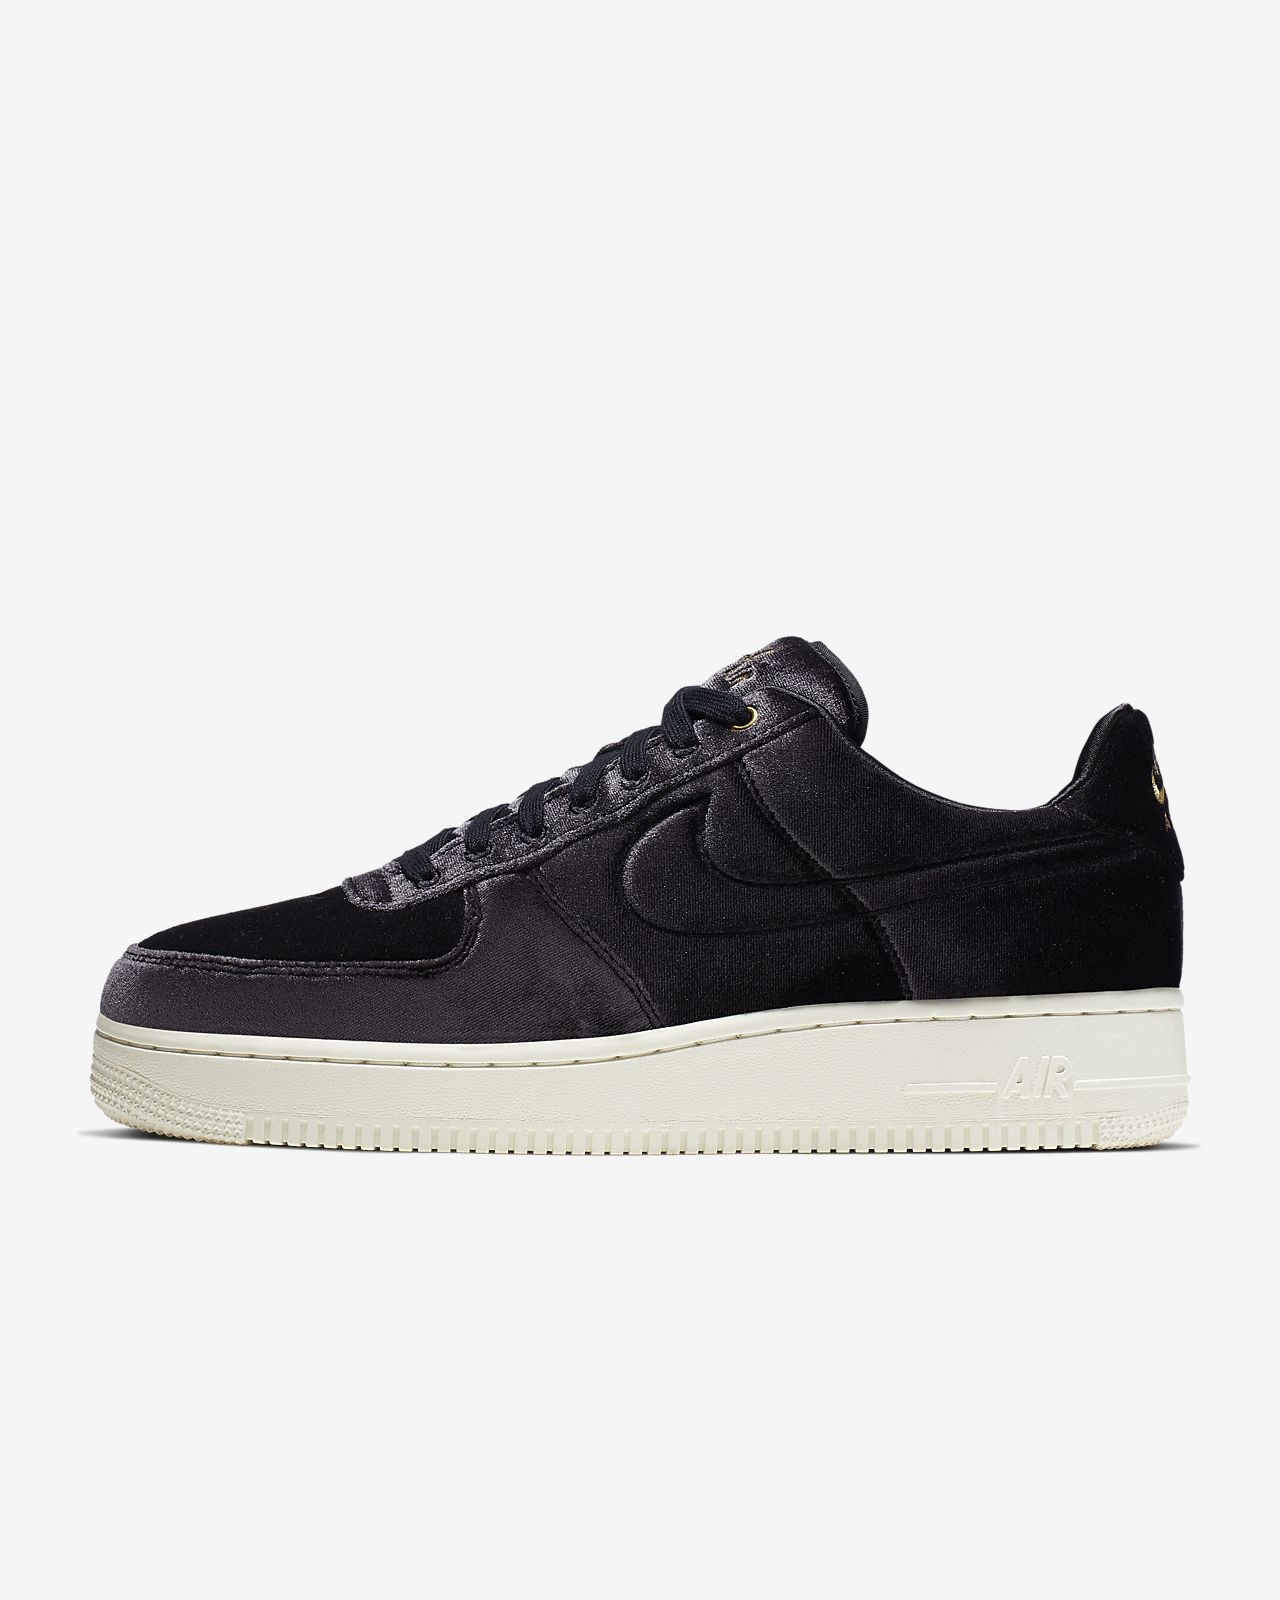 Nike Air Force 1 '07 Premium in